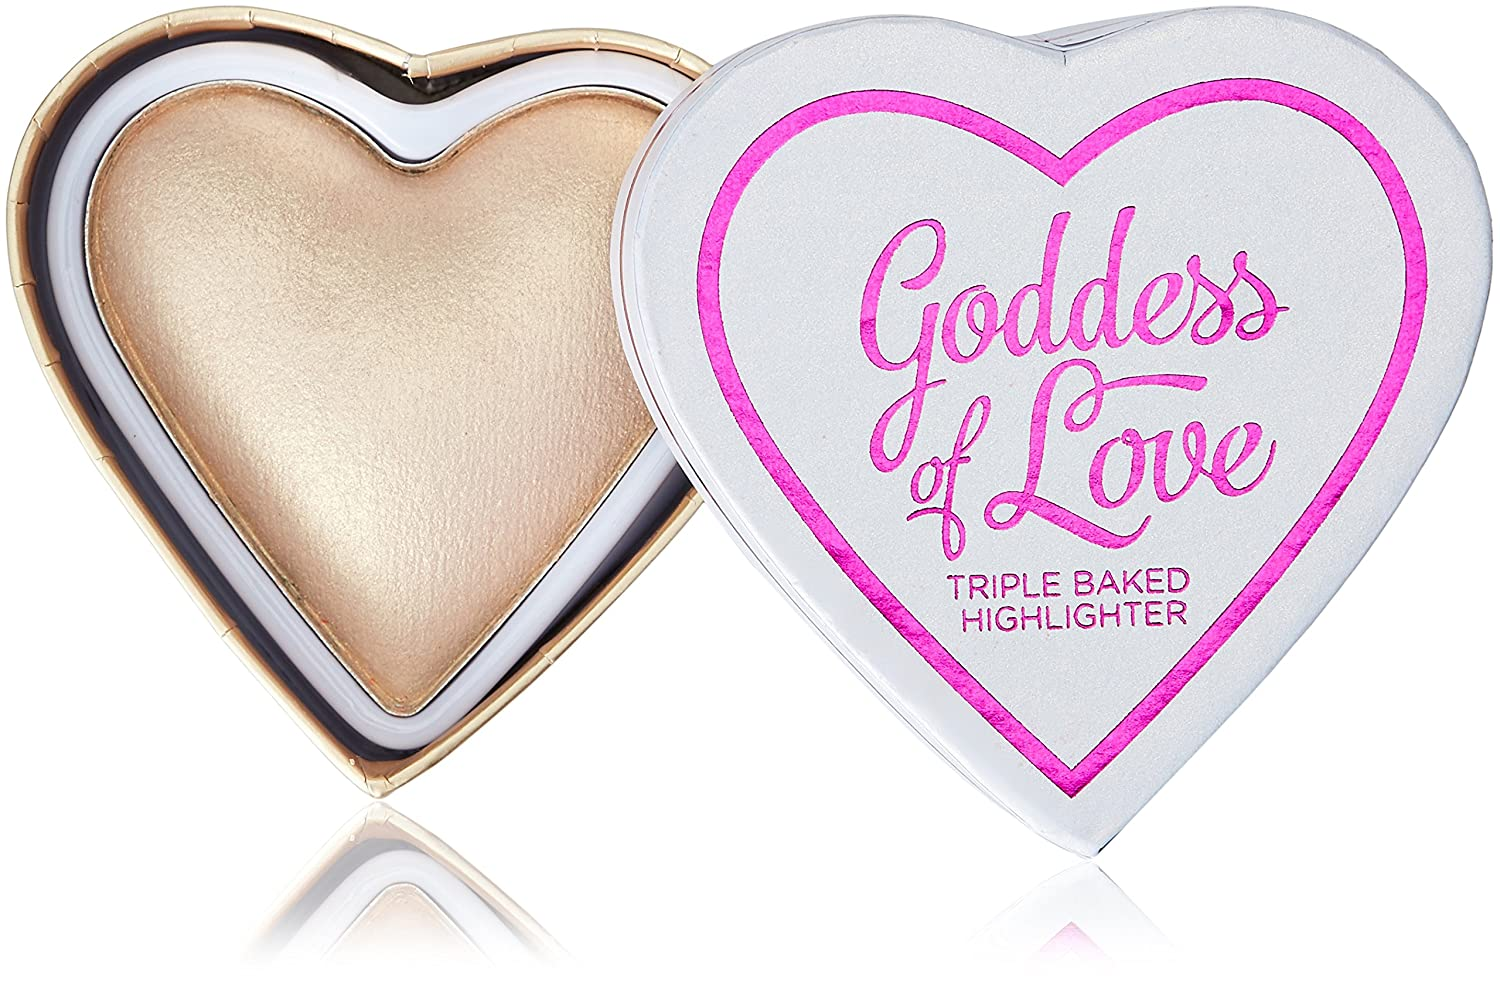 Makeup Revolution I Heart Makeup Hearts Highlighter - Golden Goddess, 10 g 5029066053305